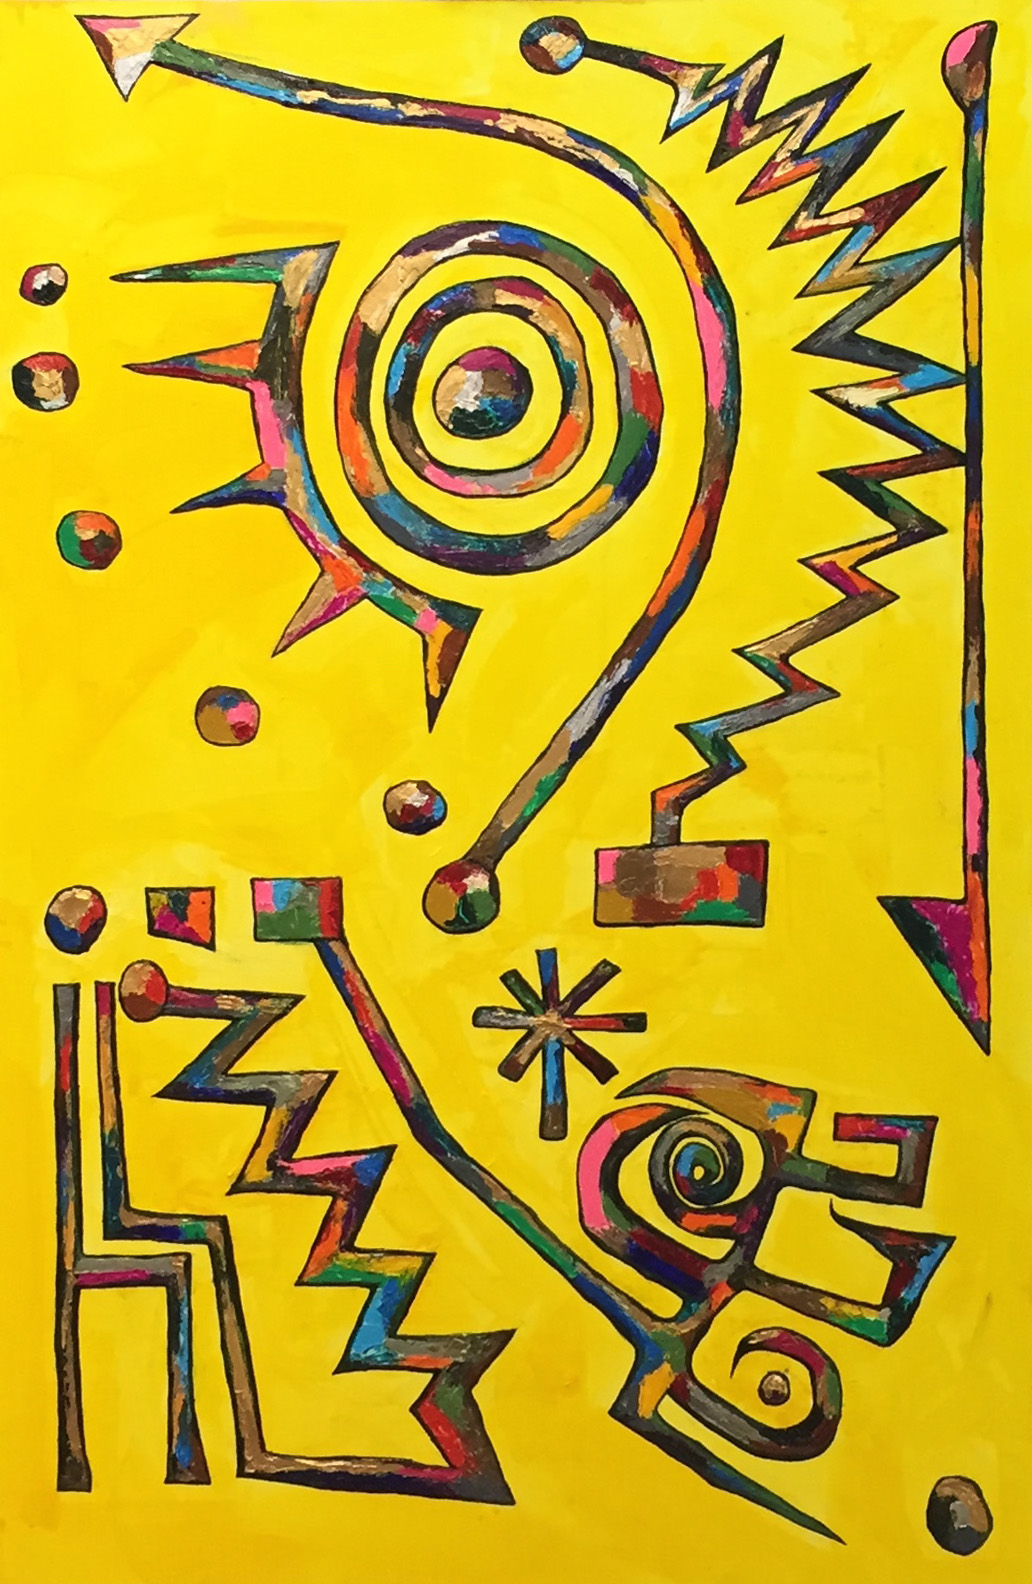 노예의 꿈 study of Kandinsky with indicators 116.8*72.7cm oil on canvas 2015 복사본.jpg